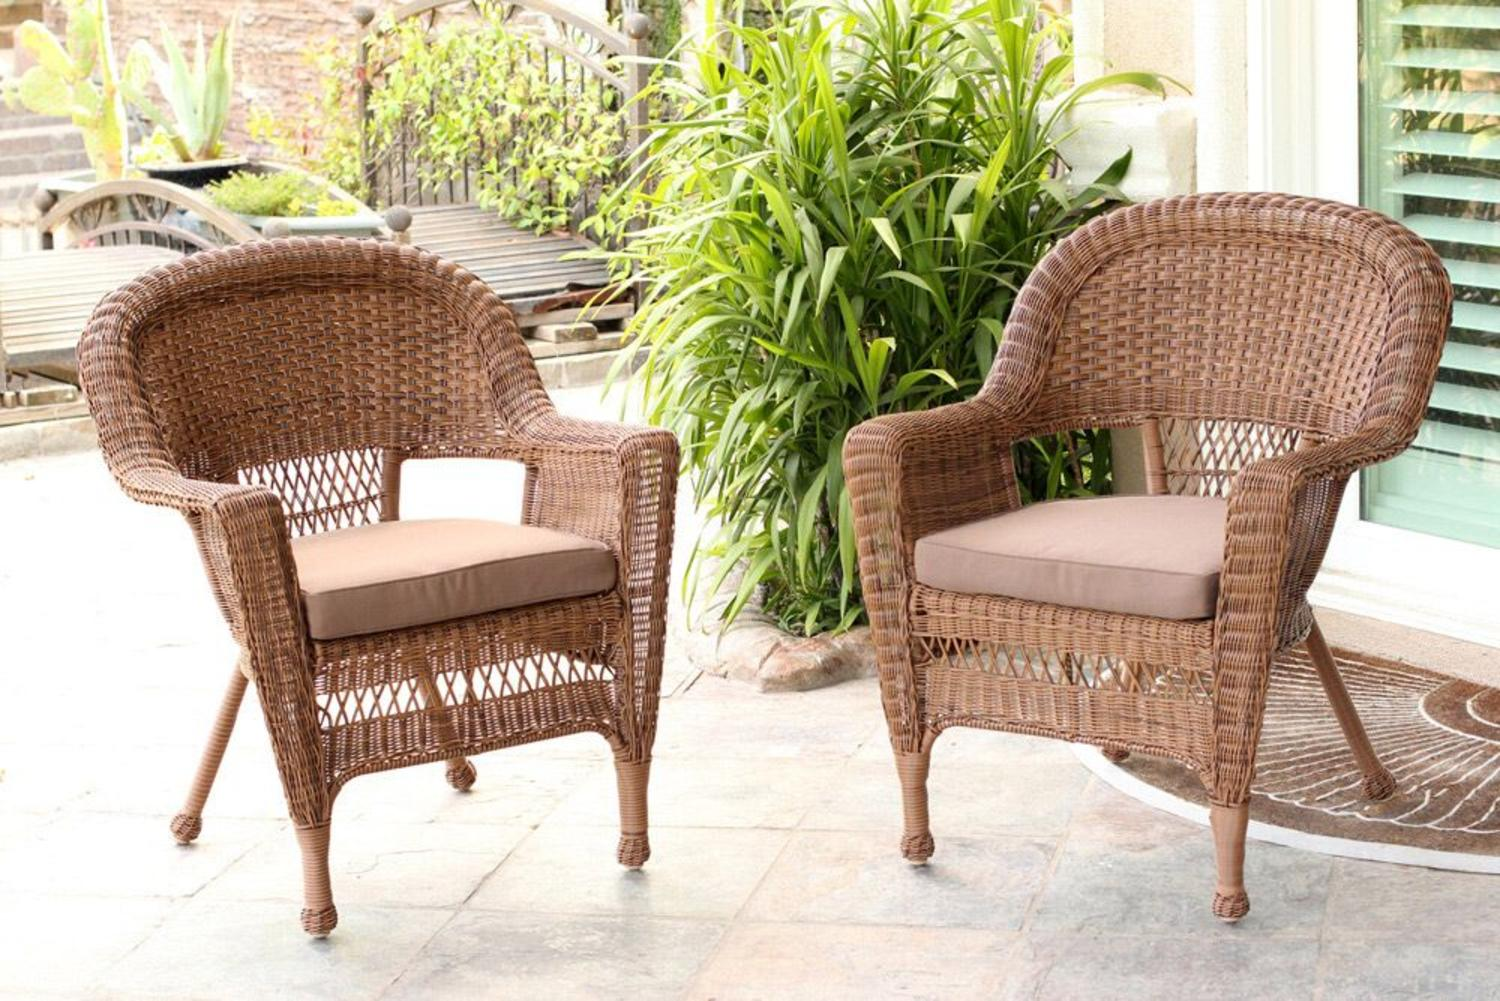 comfortable wicker chairs ikea foldable set of 2 honey resin outdoor patio garden brown cushions walmart com